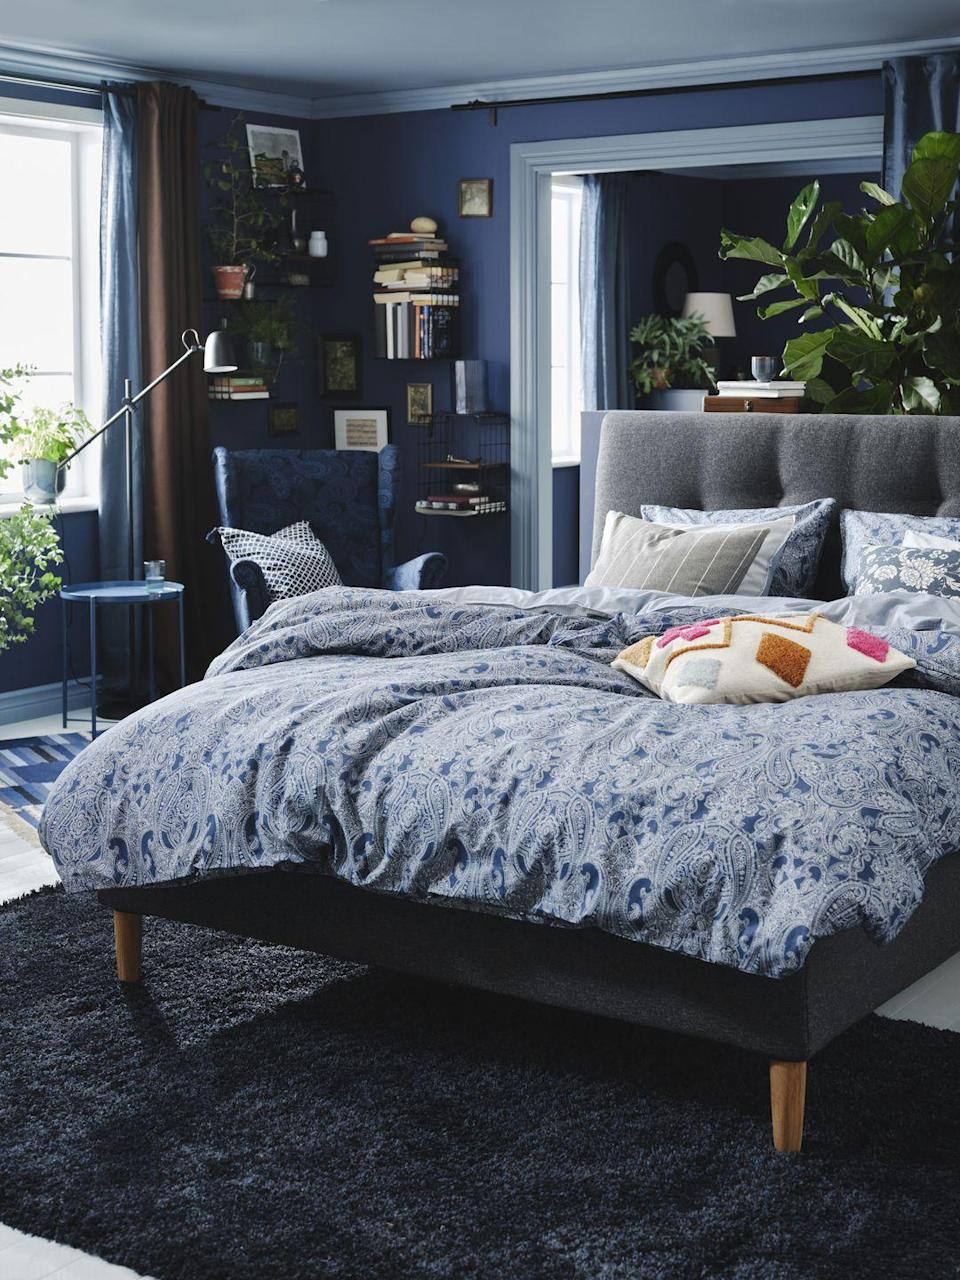 """<p>""""A <a href=""""https://www.countryliving.com/uk/homes-interiors/interiors/a36658021/guest-bedroom-ideas/"""" rel=""""nofollow noopener"""" target=""""_blank"""" data-ylk=""""slk:bedroom"""" class=""""link rapid-noclick-resp"""">bedroom</a> is a place of rest, although emotional or physical clutter can often get in the way and impact our sleep,"""" Clotilde adds. <br></p><p>""""Choosing the right colour palette is a great way to help create a peaceful space where you can feel at ease.""""</p>"""